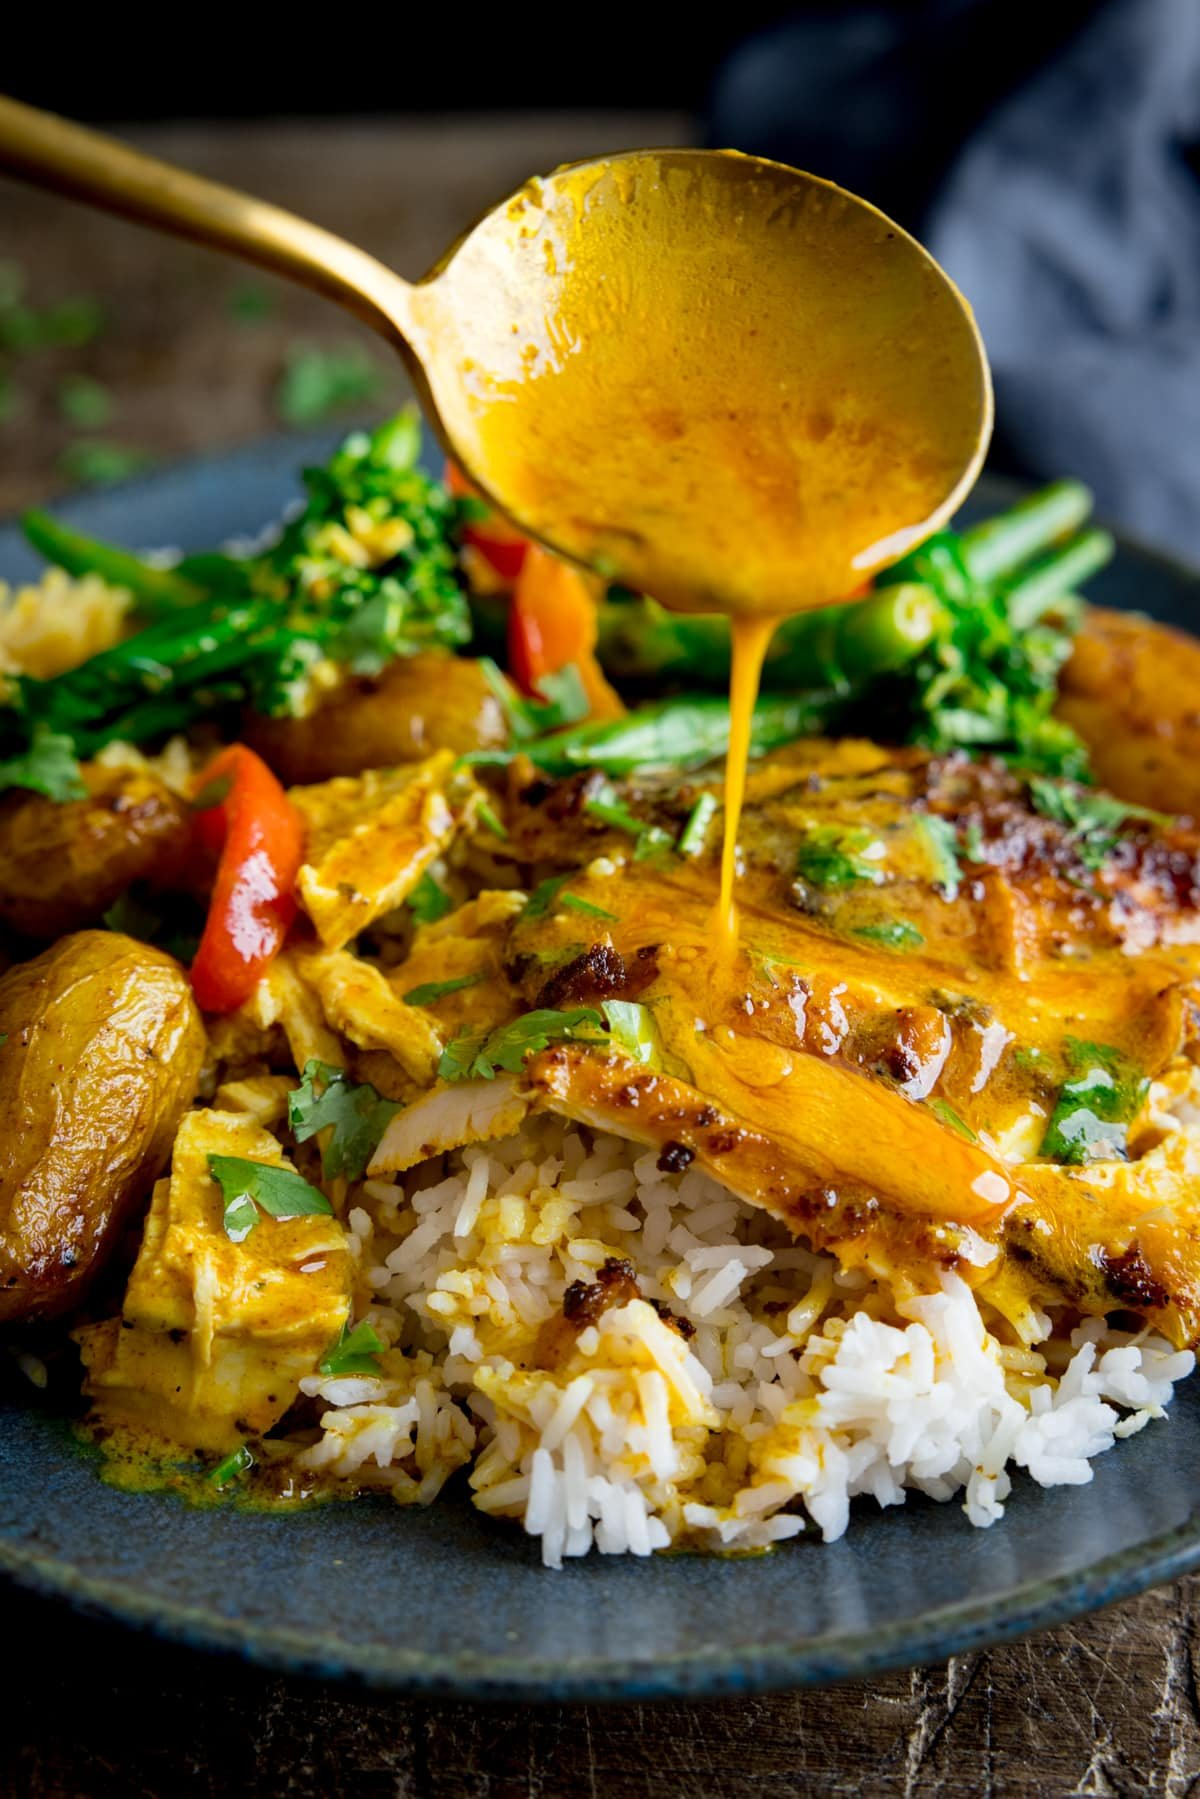 Curry sauce being spooned onto slices of curry roast chicken which is on a plate with rice and vegetables.